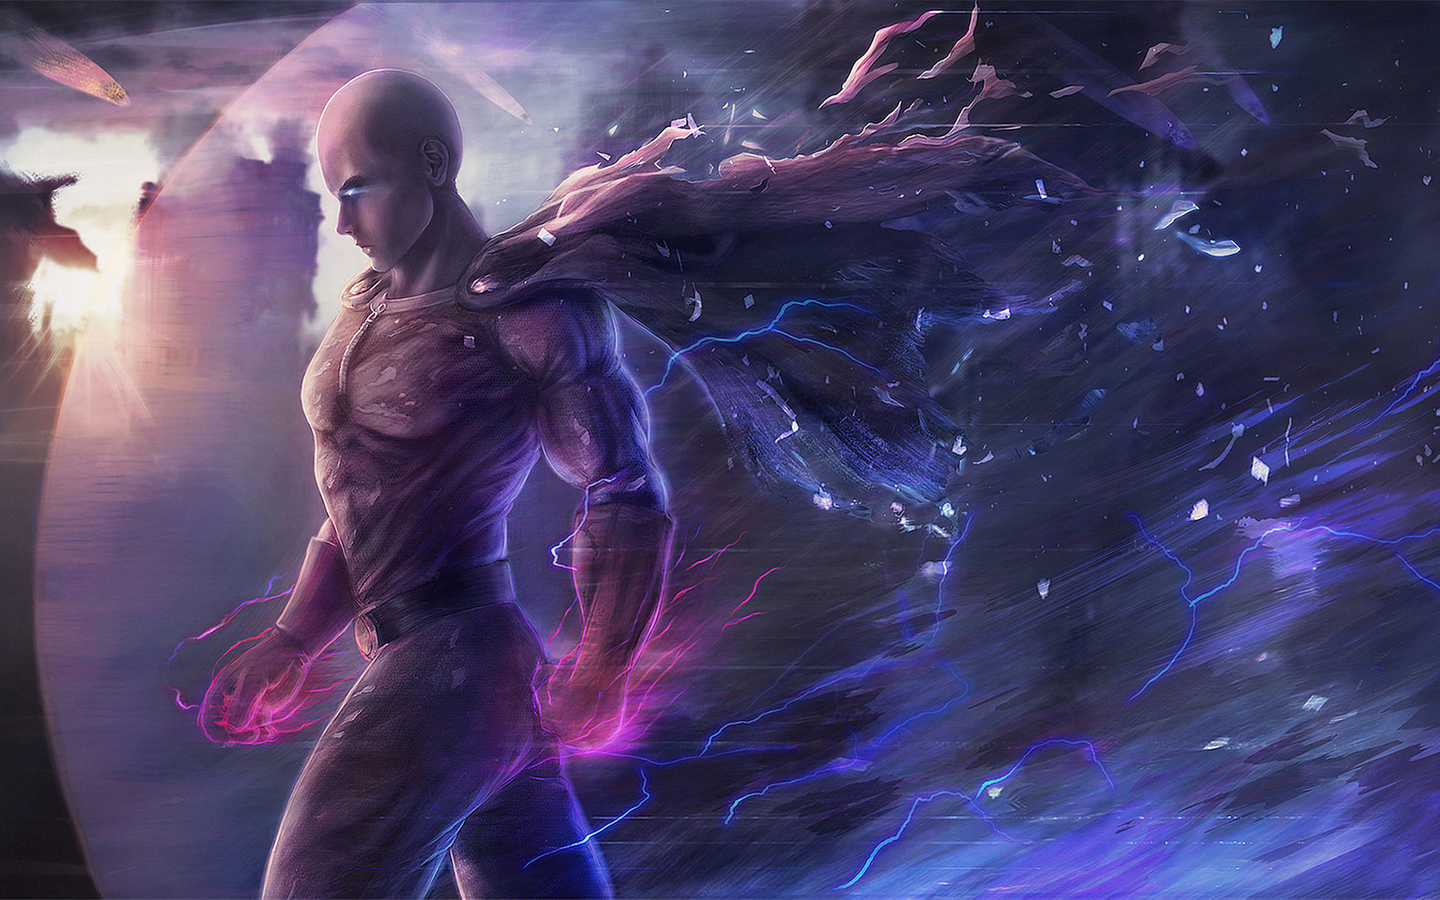 1440x900 Saitama One Punch Man 1440x900 Resolution HD 4k Wallpapers, Images, Backgrounds, Photos ...